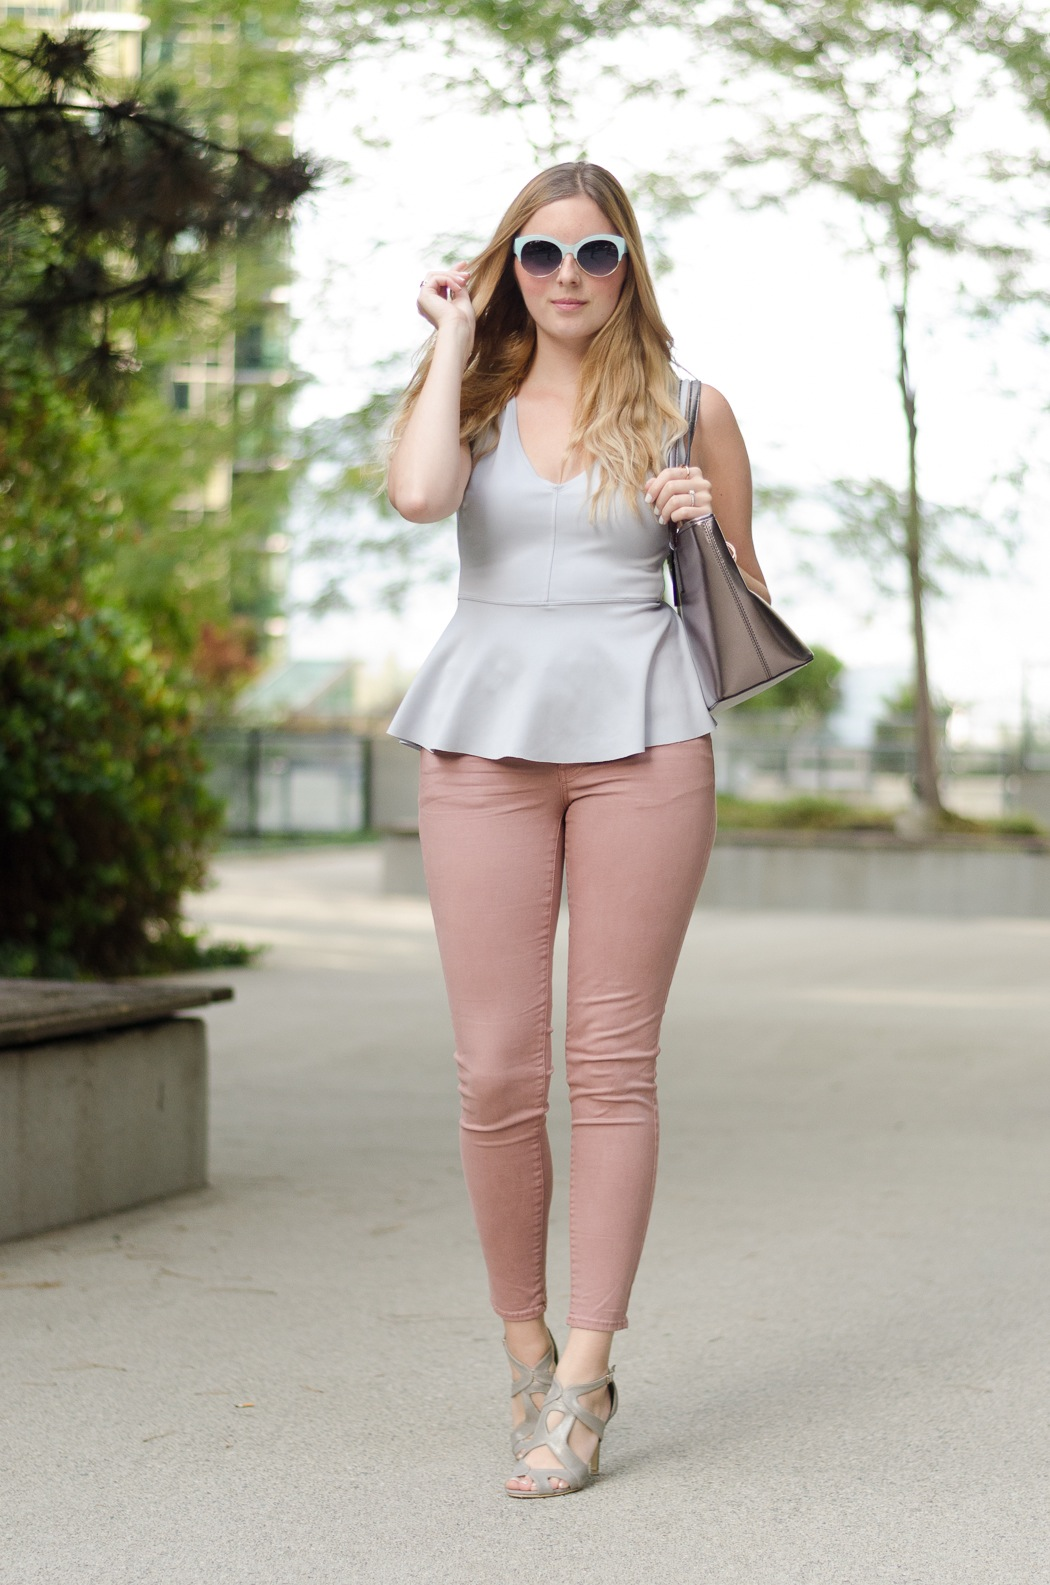 the urban umbrella style blog, vancouver style blog, vancouver fashion blog, vancouver lifestyle blog, vancouver health blog, vancouver fitness blog, vancouver travel blog, canadian faashion blog, canadian style blog, canadian lifestyle blog, canadian health blog, canadian fitness blog, canadian travel blog, bree aylwin, american eagle sateen begging in buff, AEO jeggings, how to style jeggings, forever 21 peplum, rehearsal dinner outfit idea, best lifestyle blogs, best fitness blogs, best health blogs, best travel blogs, top fashion blogs, top style blogs, top lifestyle blogs, top fitness blogs, top health blogs, top travel blogs